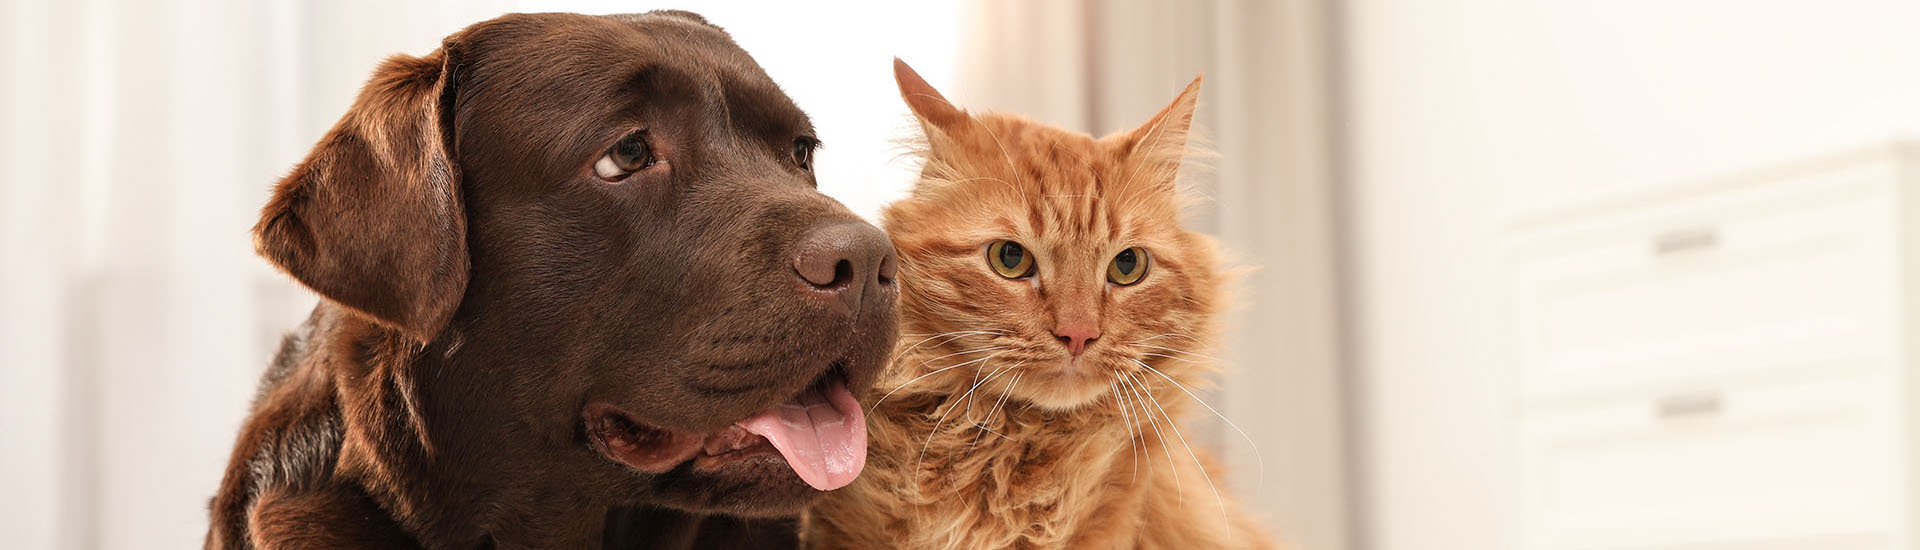 Brown lab and cat on rug